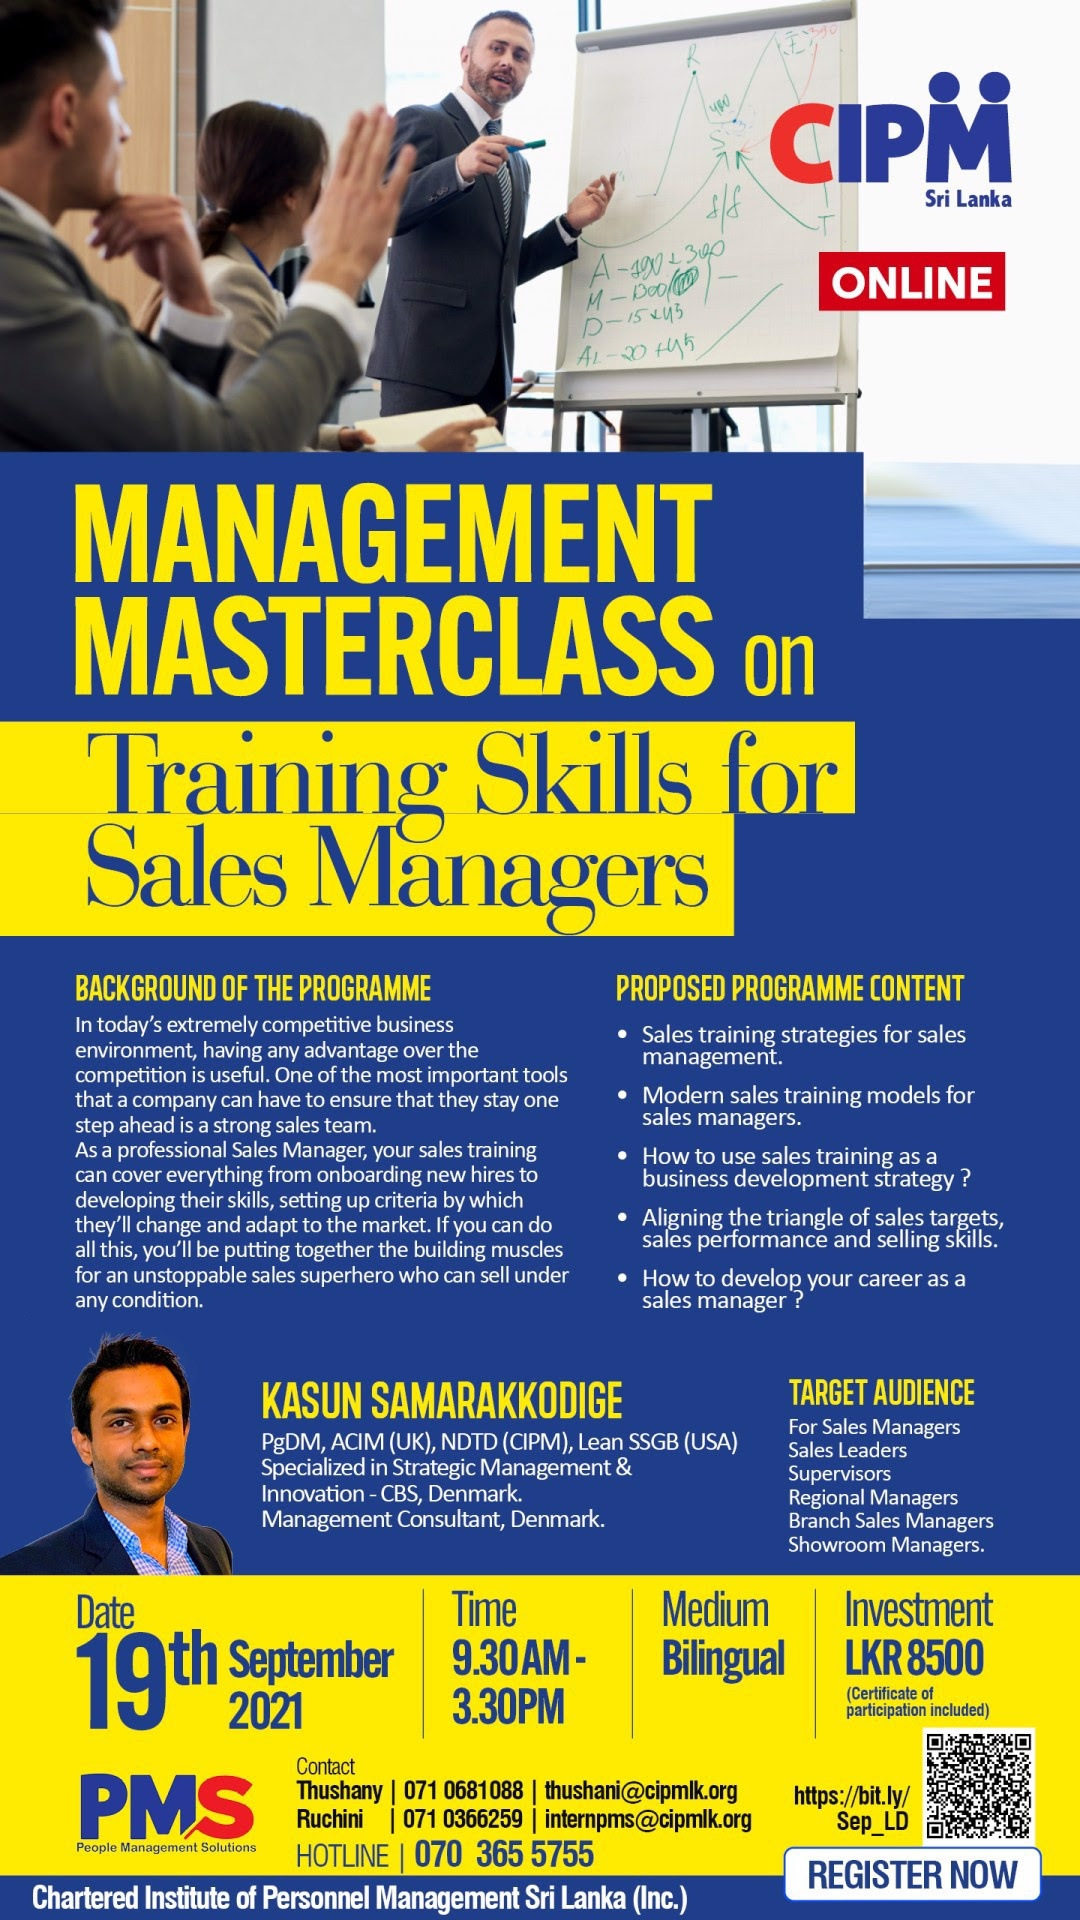 Management Masterclass on Training Skills for Sales Managers